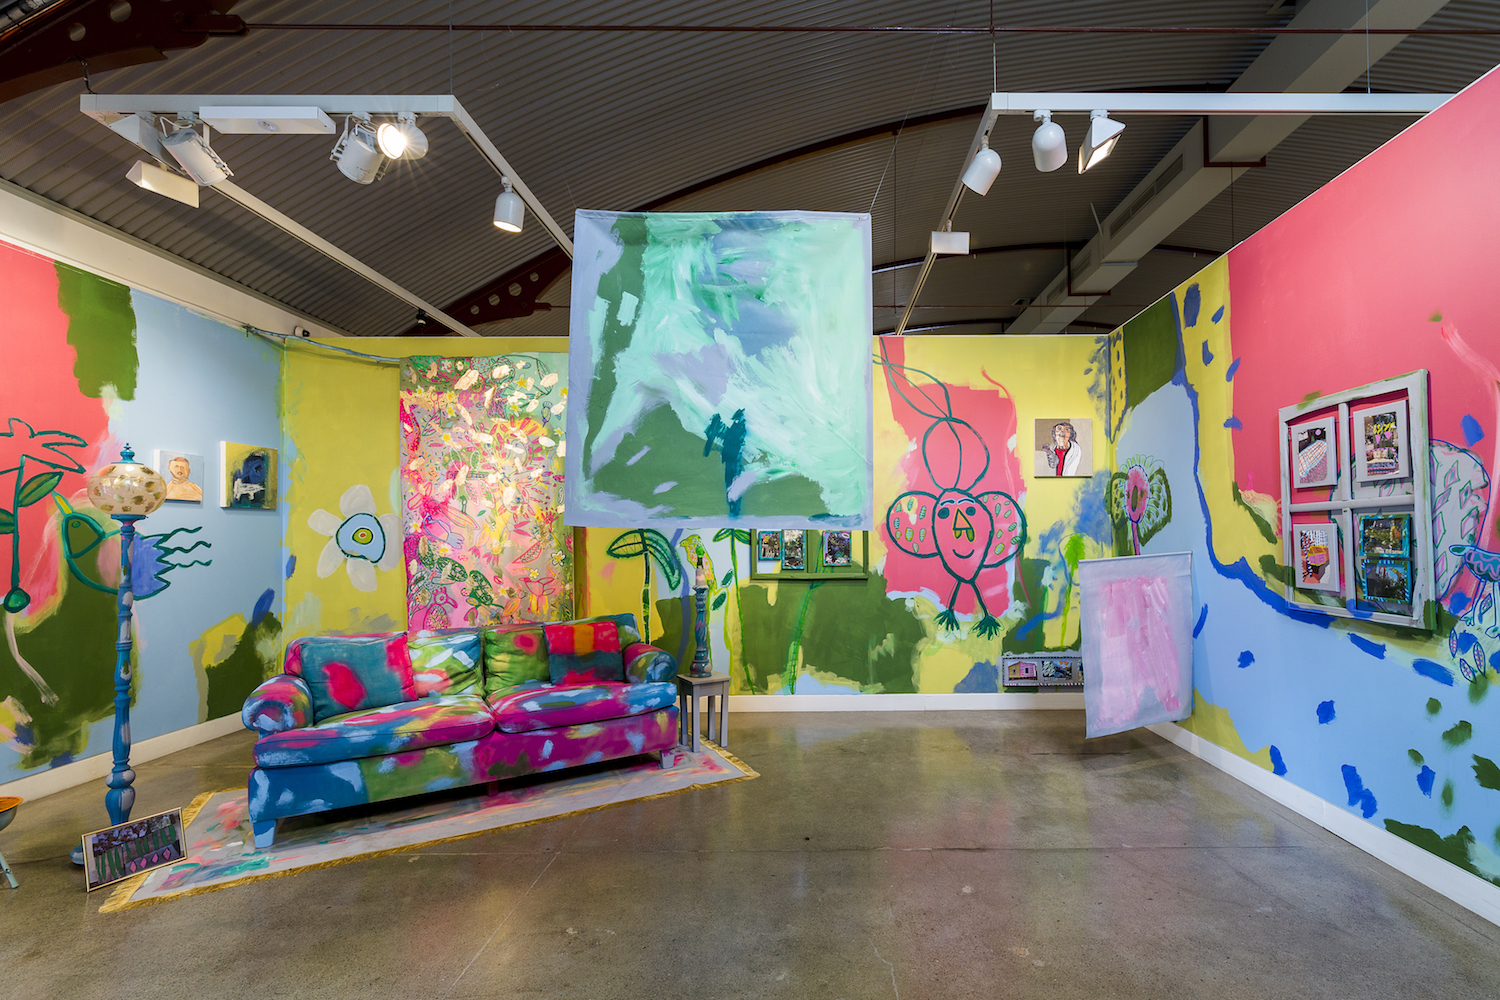 Emily Crockford and Rosie Deacon,  Tree House Koala Girls , 2018, painting and mixed media installation, Project Space, Cement Fondu